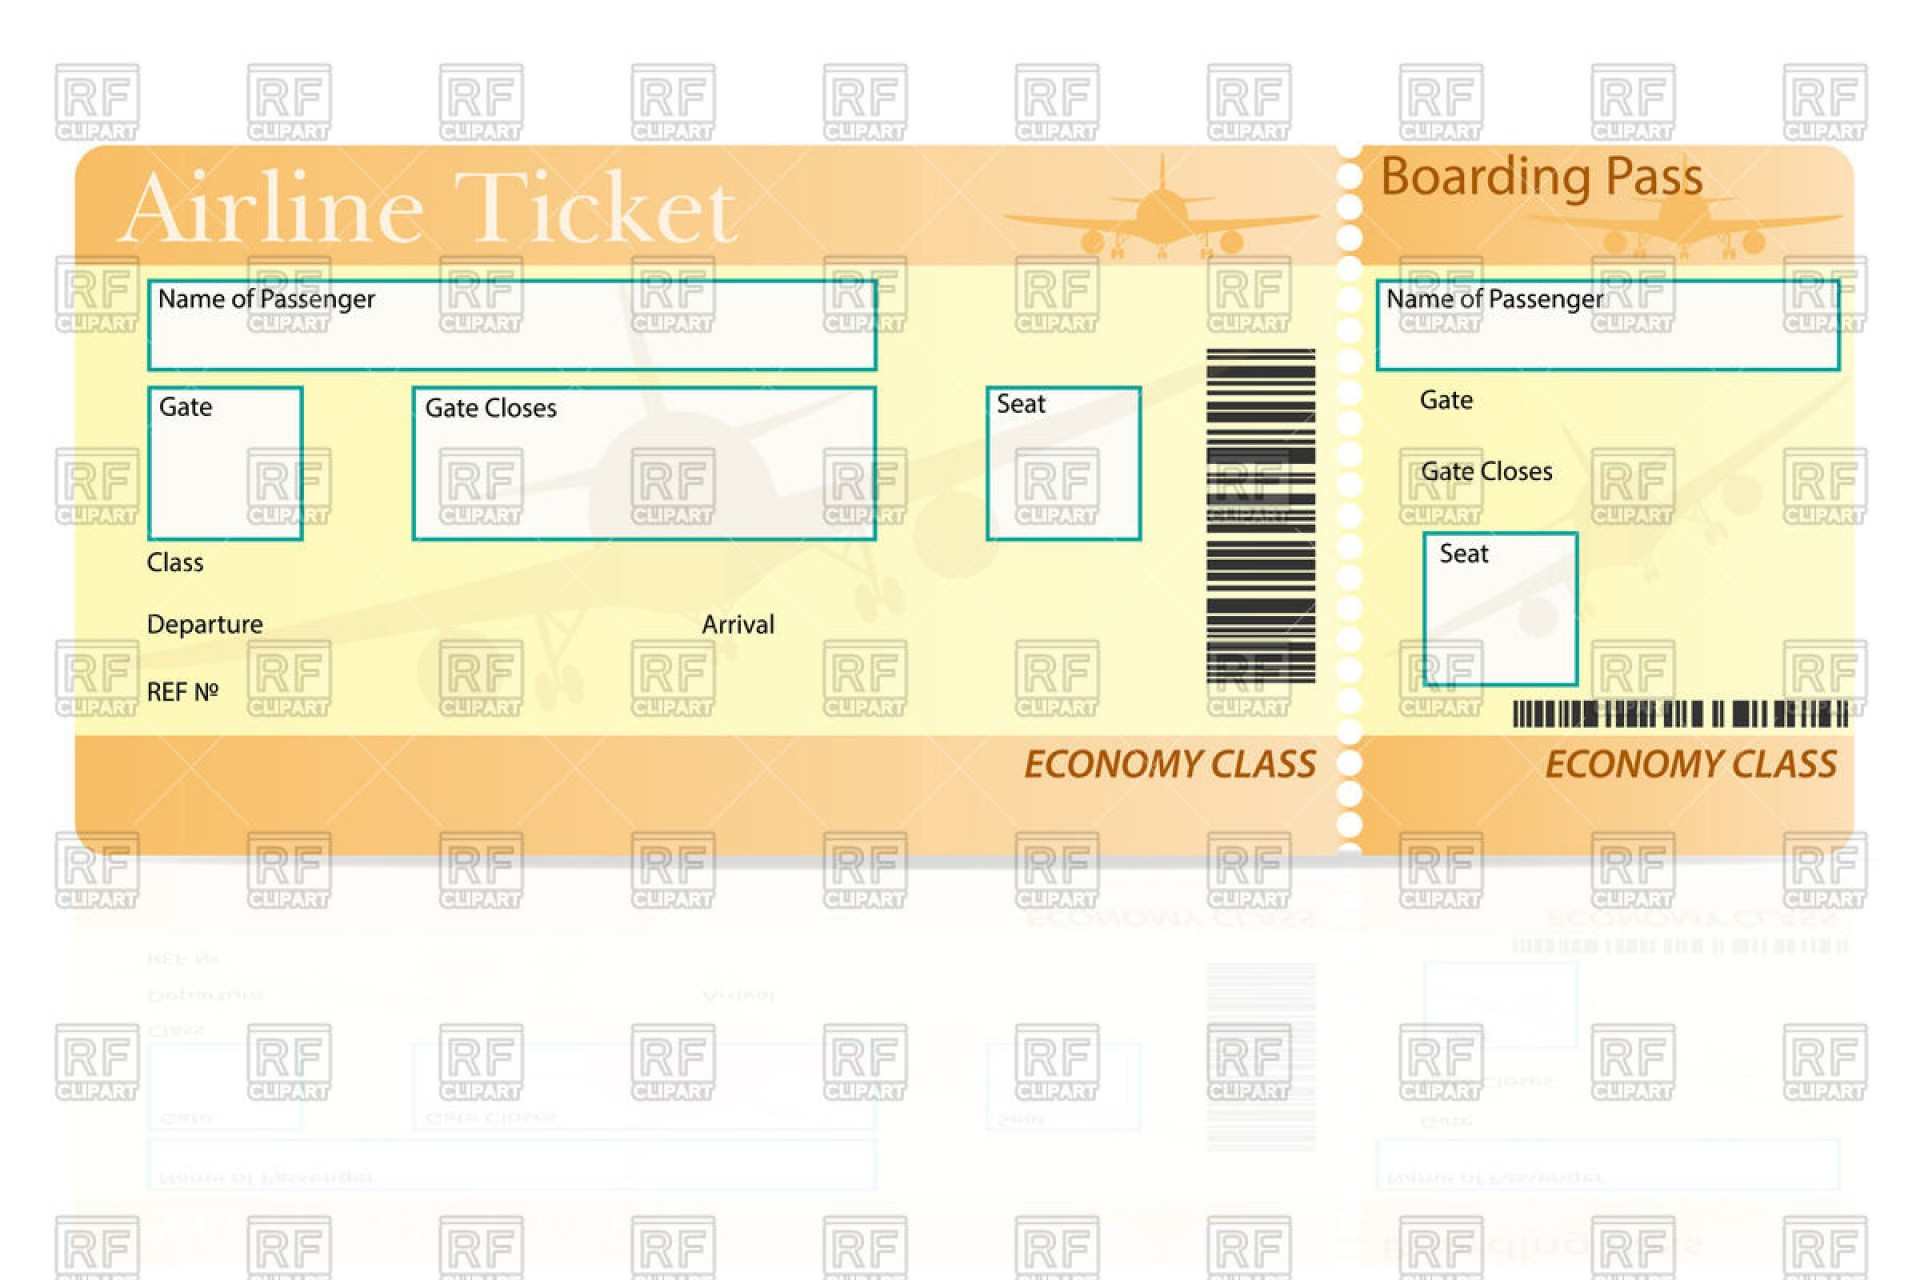 007 Template Ideas Free Plane Ticket Word Blank With.